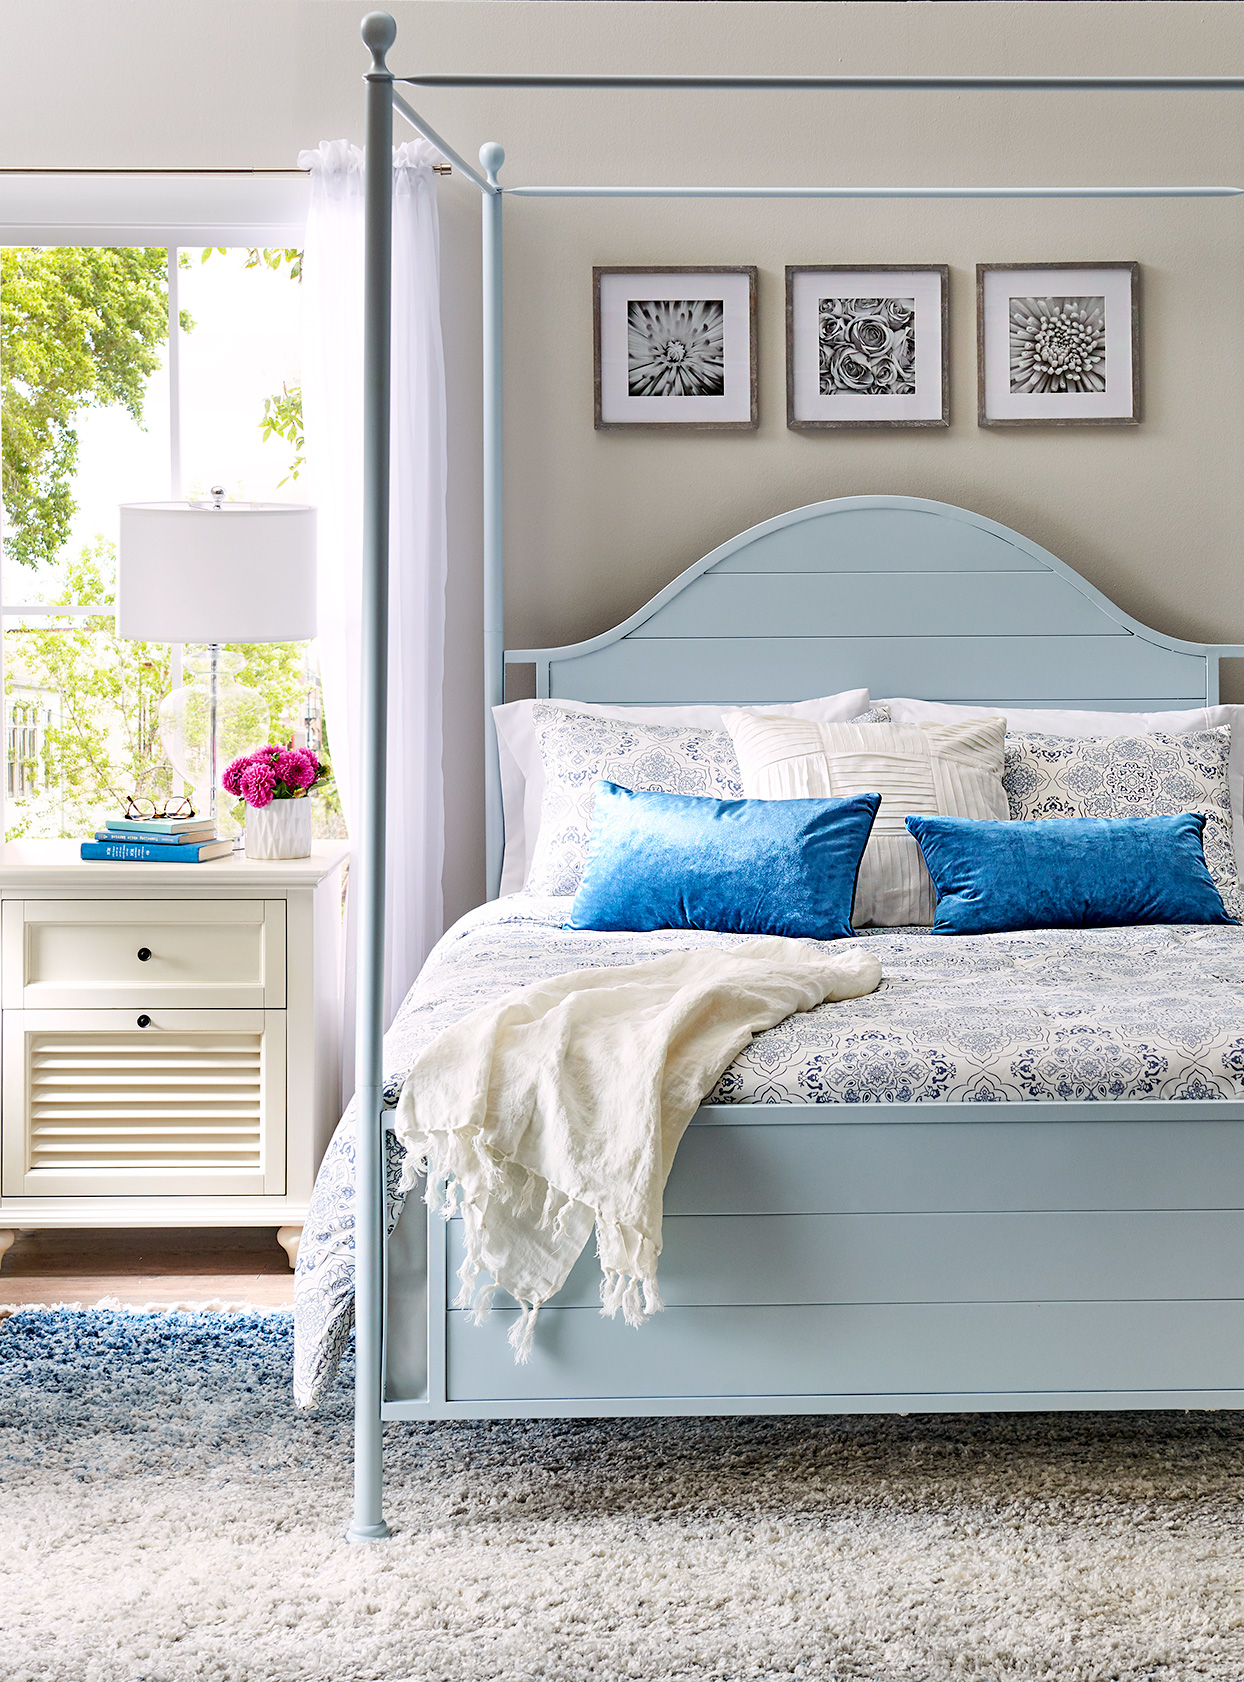 Bedroom with bed, blue pillows